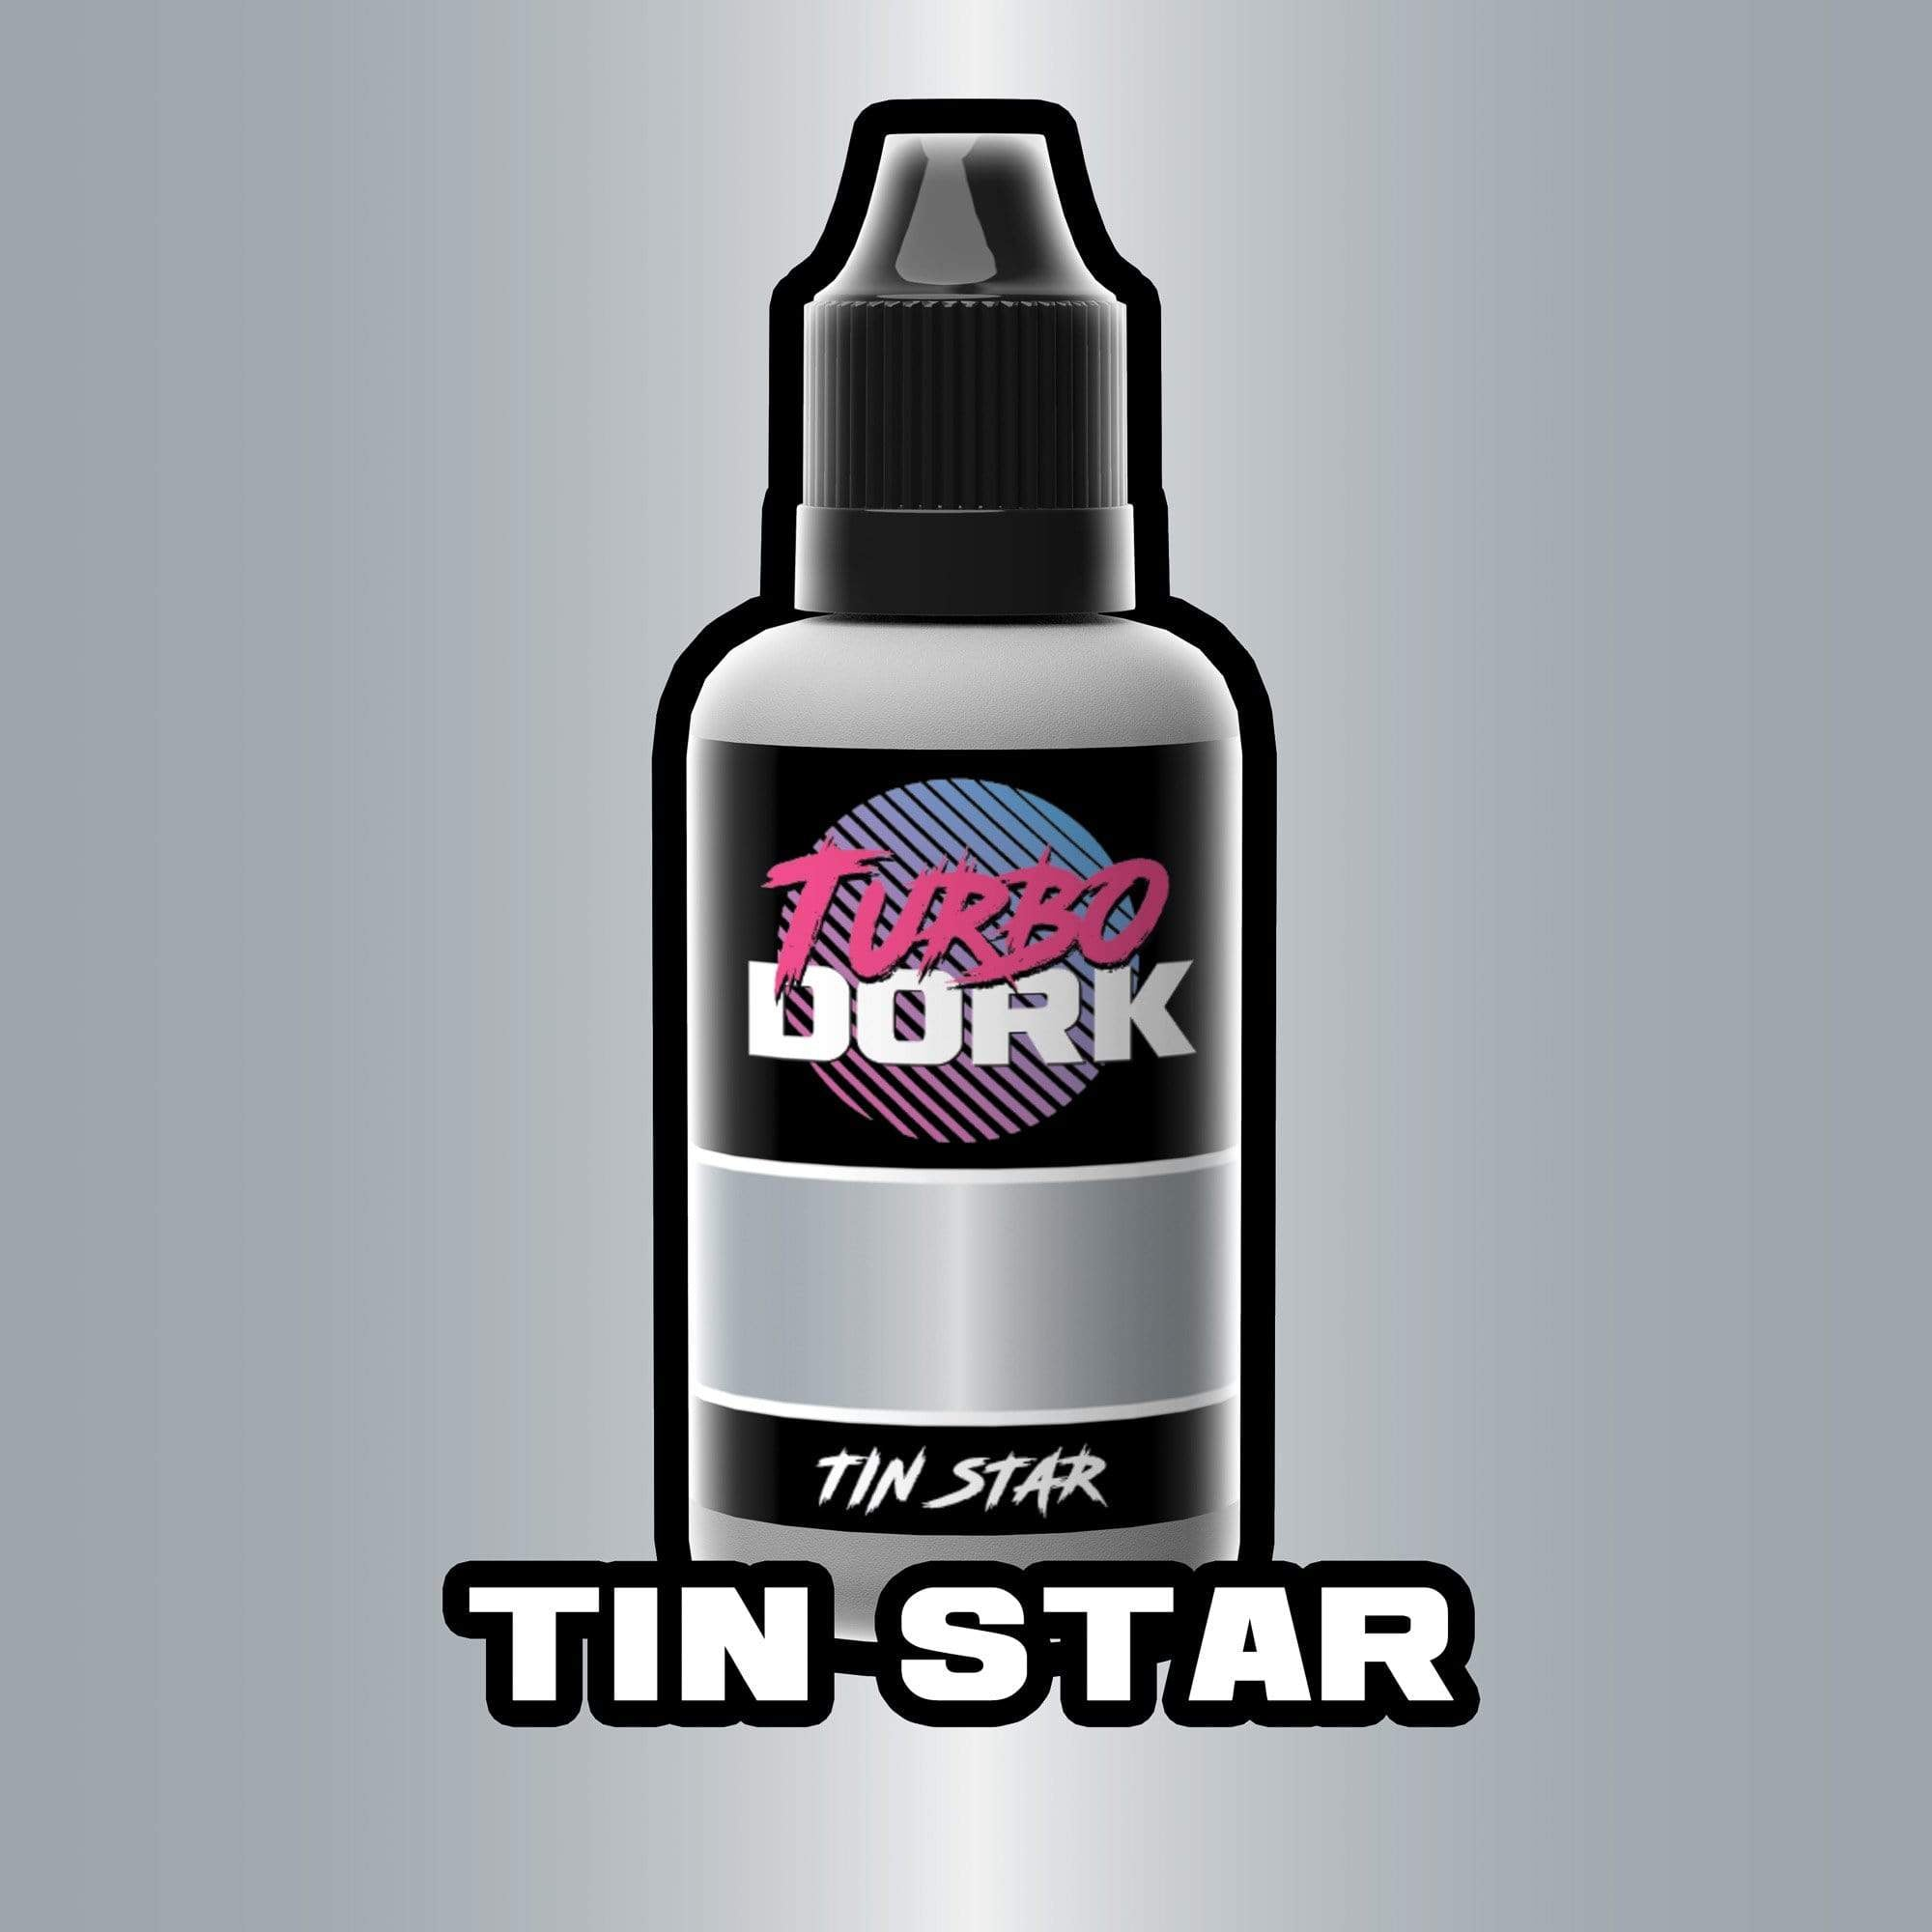 Turbo Dork Metallic 20ml Bottle Tin Star Metallic Acrylic Paint